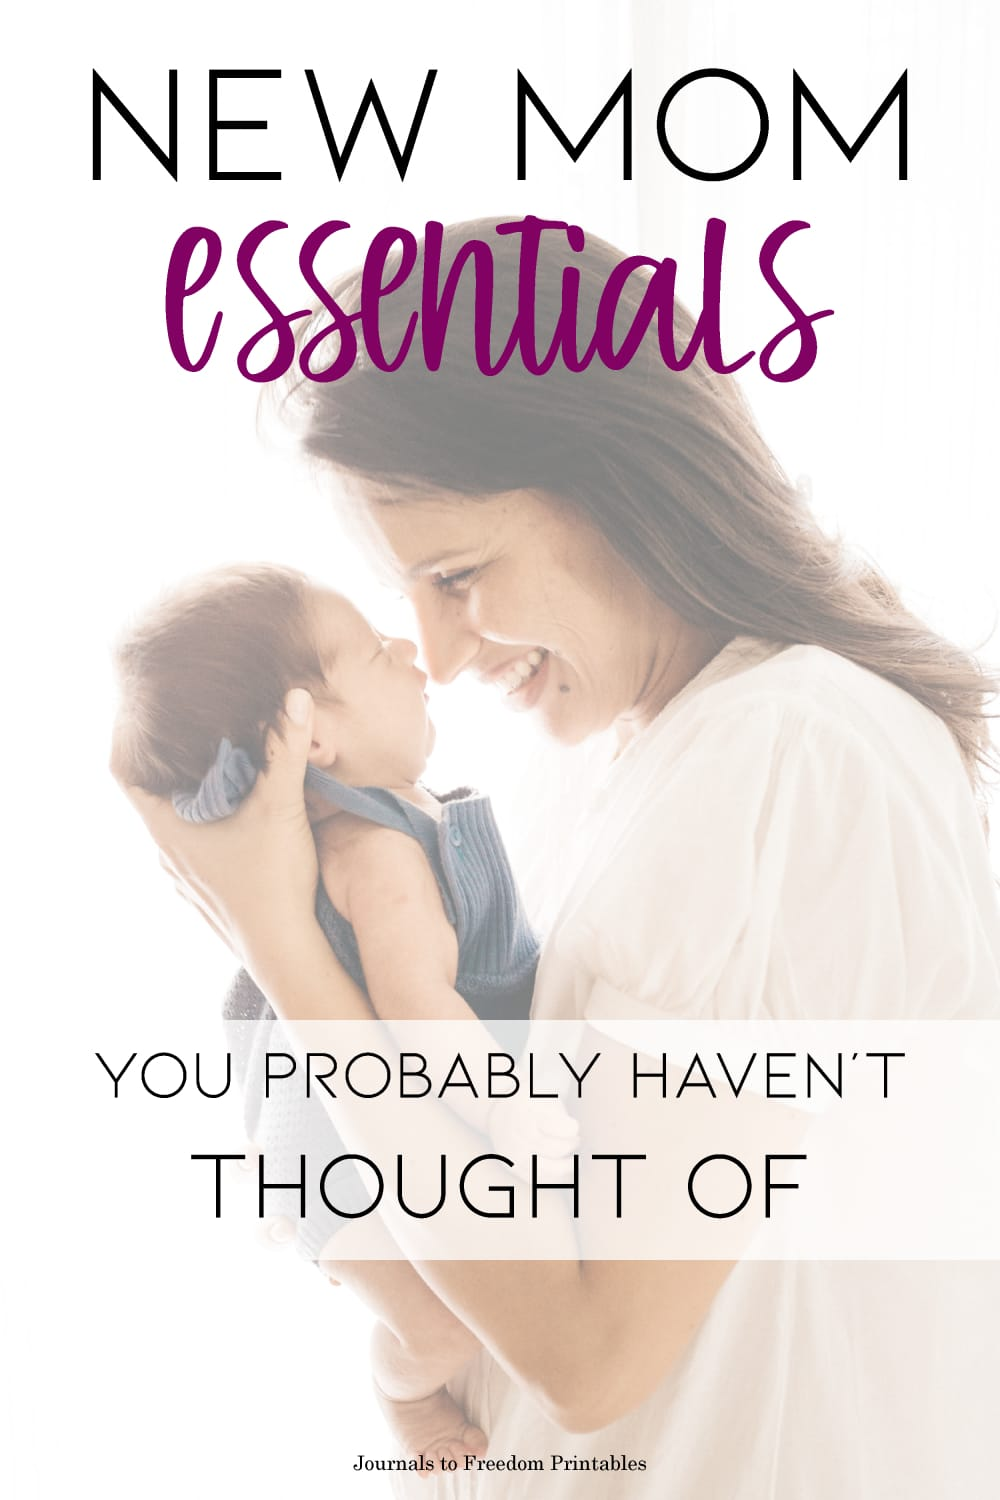 6 New Mom Essentials You Probably Haven't Thought Of